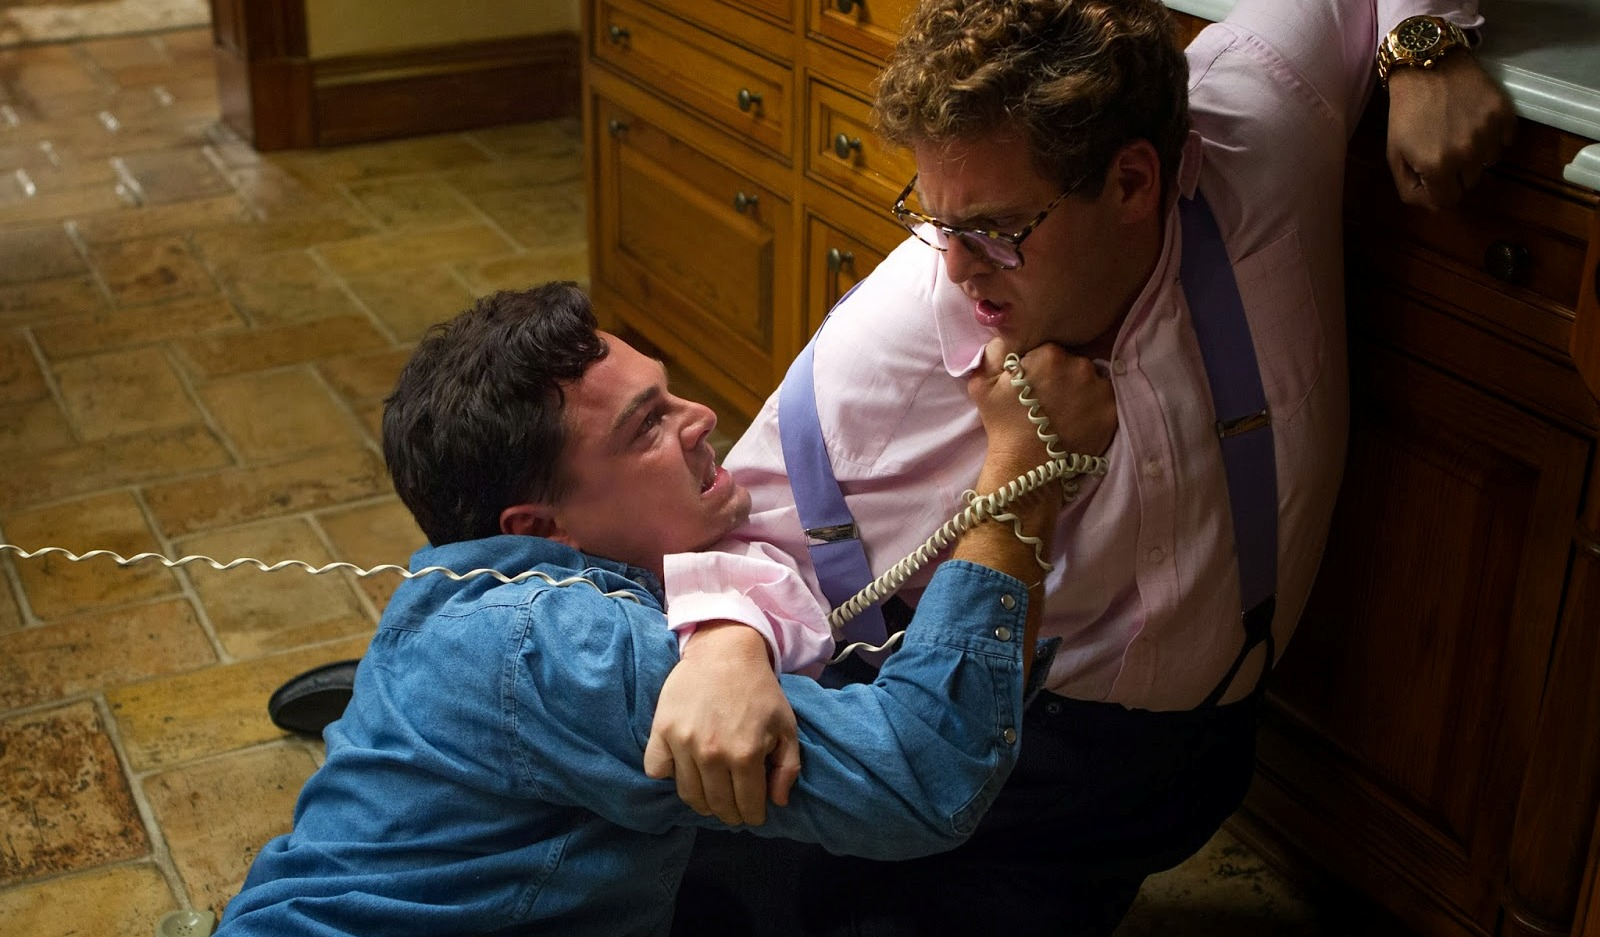 The Wolf of Wall Street quaaludes